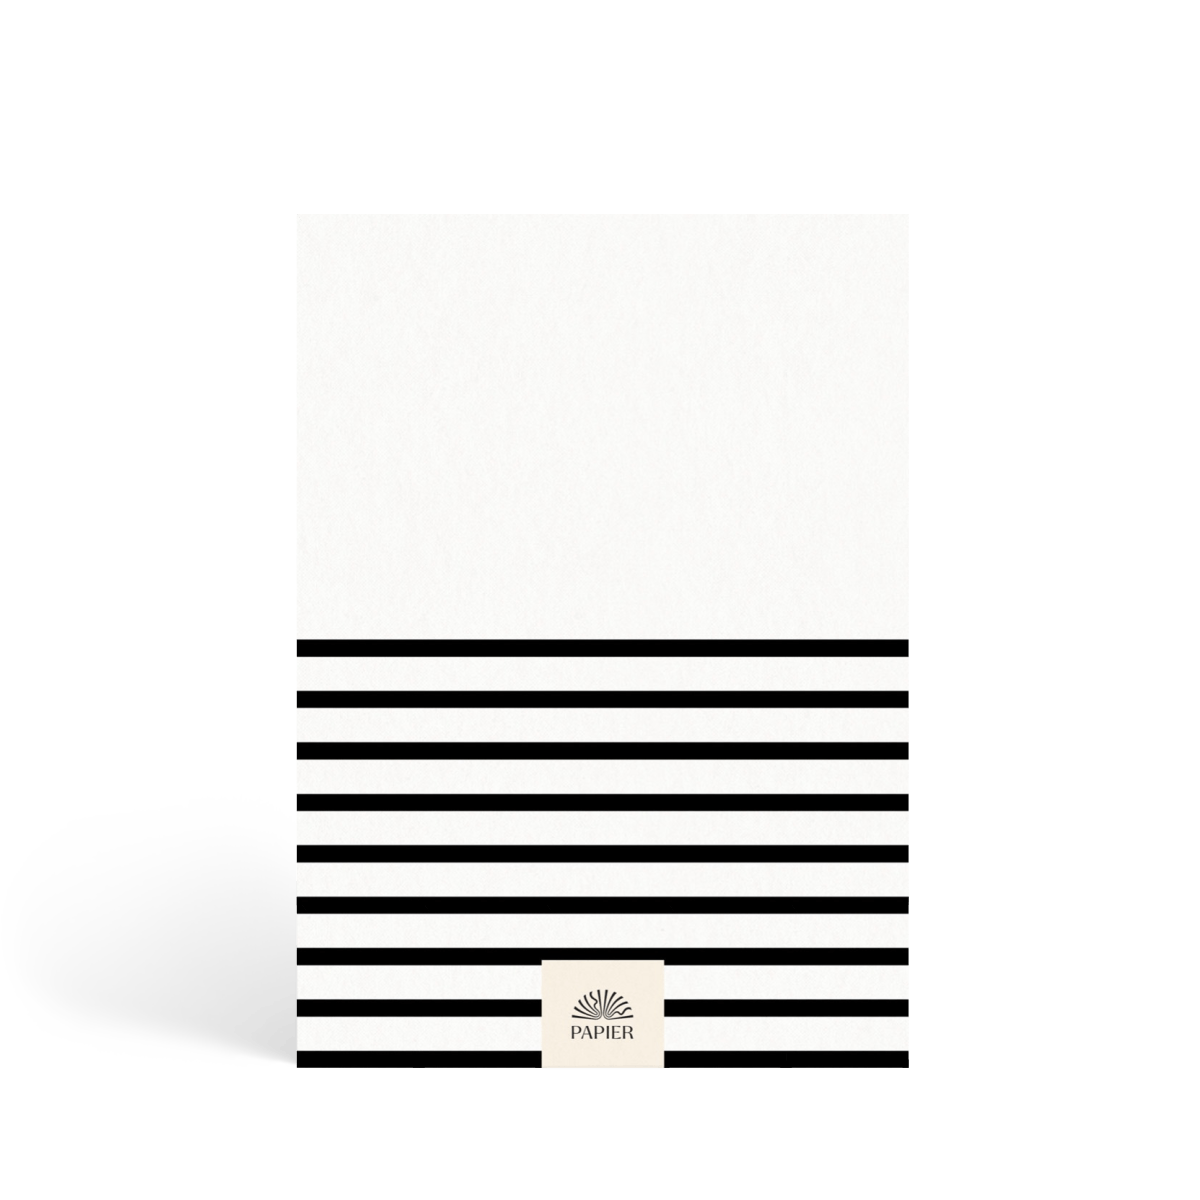 Https%3a%2f%2fwww.papier.com%2fproduct image%2f10154%2f5%2fdemi stripe 2587 arriere 1470842763.png?ixlib=rb 1.1